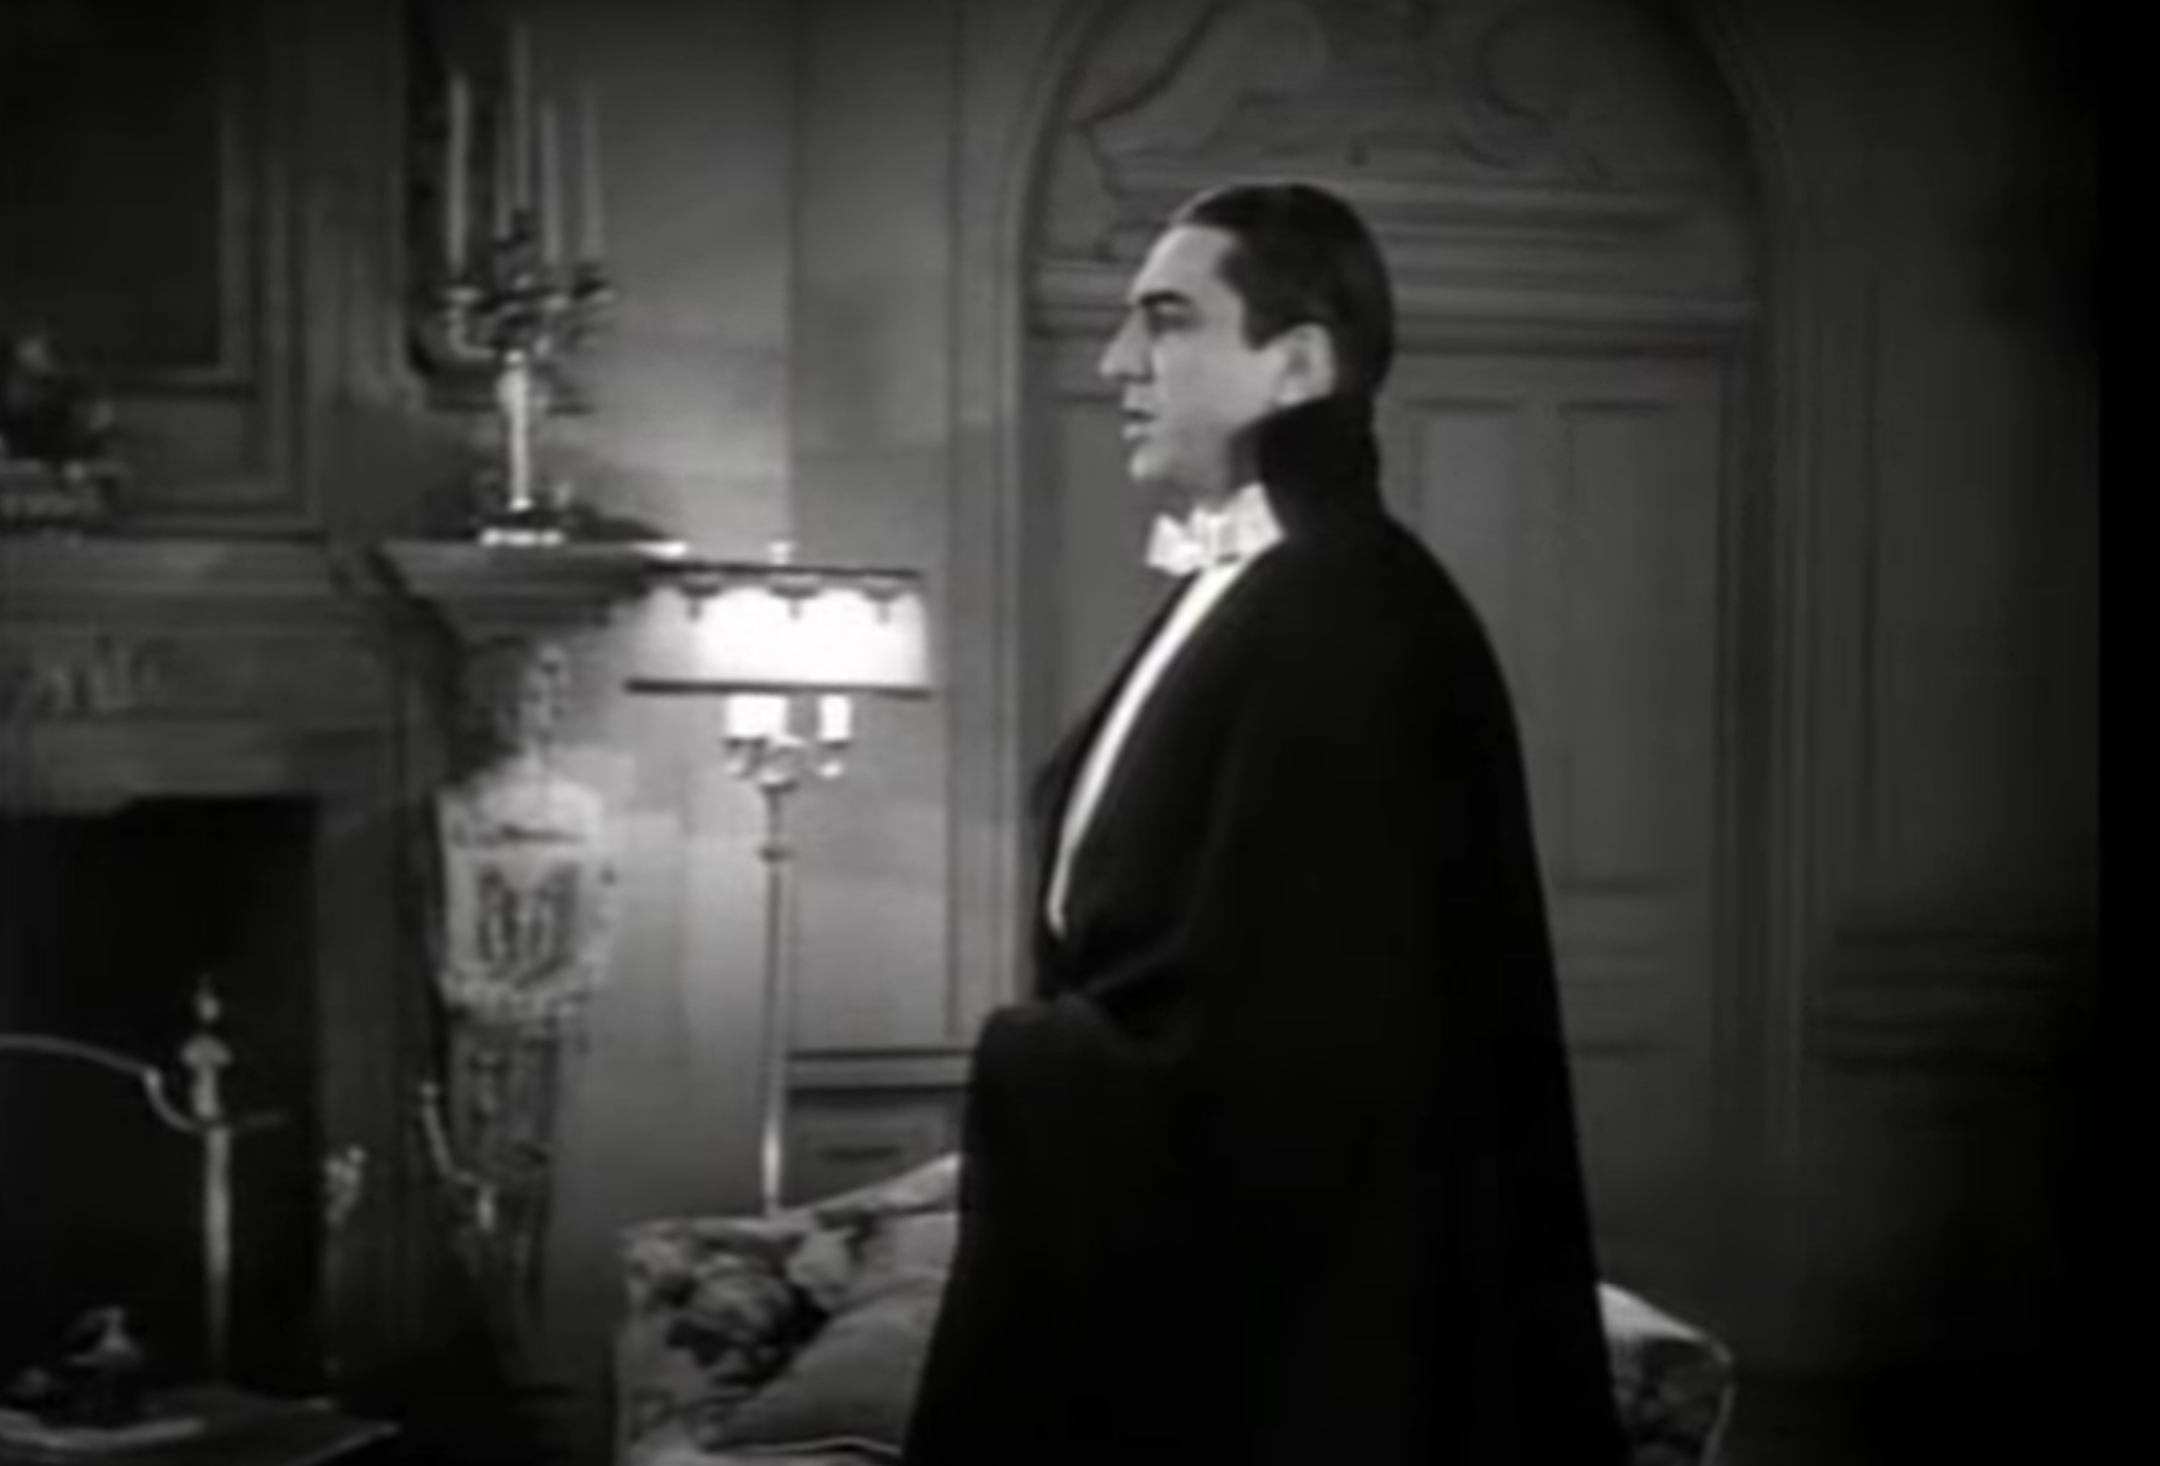 dracula standing up while talking